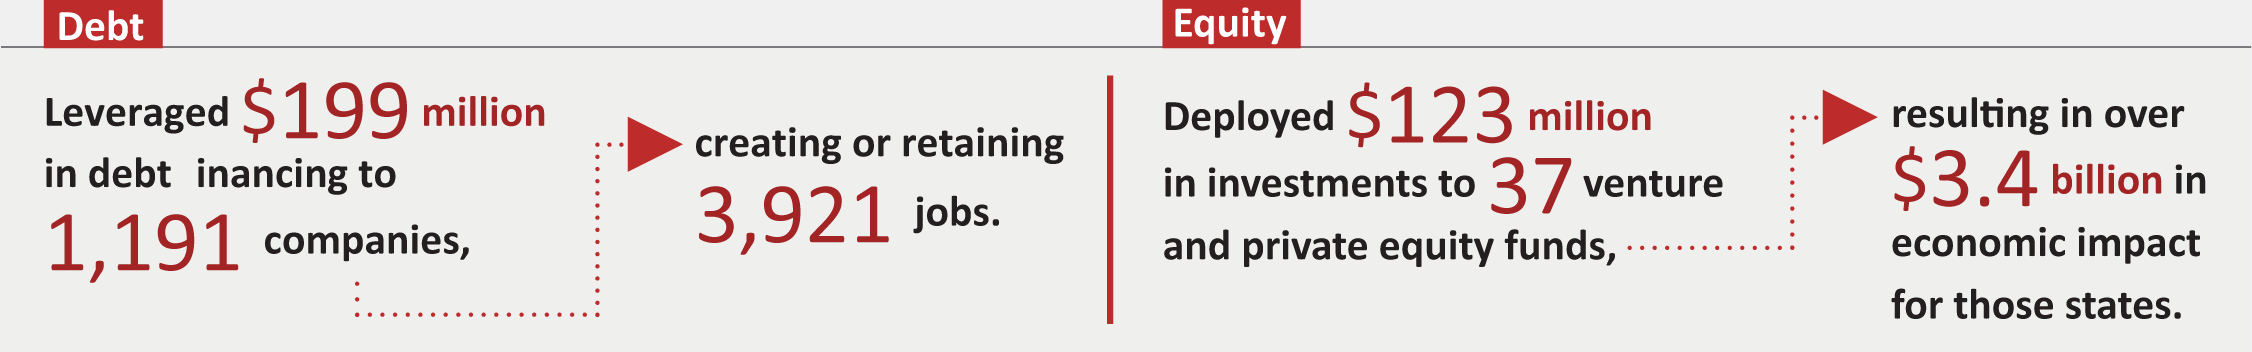 Debt: leveraged $189 million in debt financing to 1,190 companies, creating or retaining 2,846 jobs. Equity: deployed $123 million in investments to 37 venture and private equity funds, resulting in over $3.5 billion in economic impact for those states.